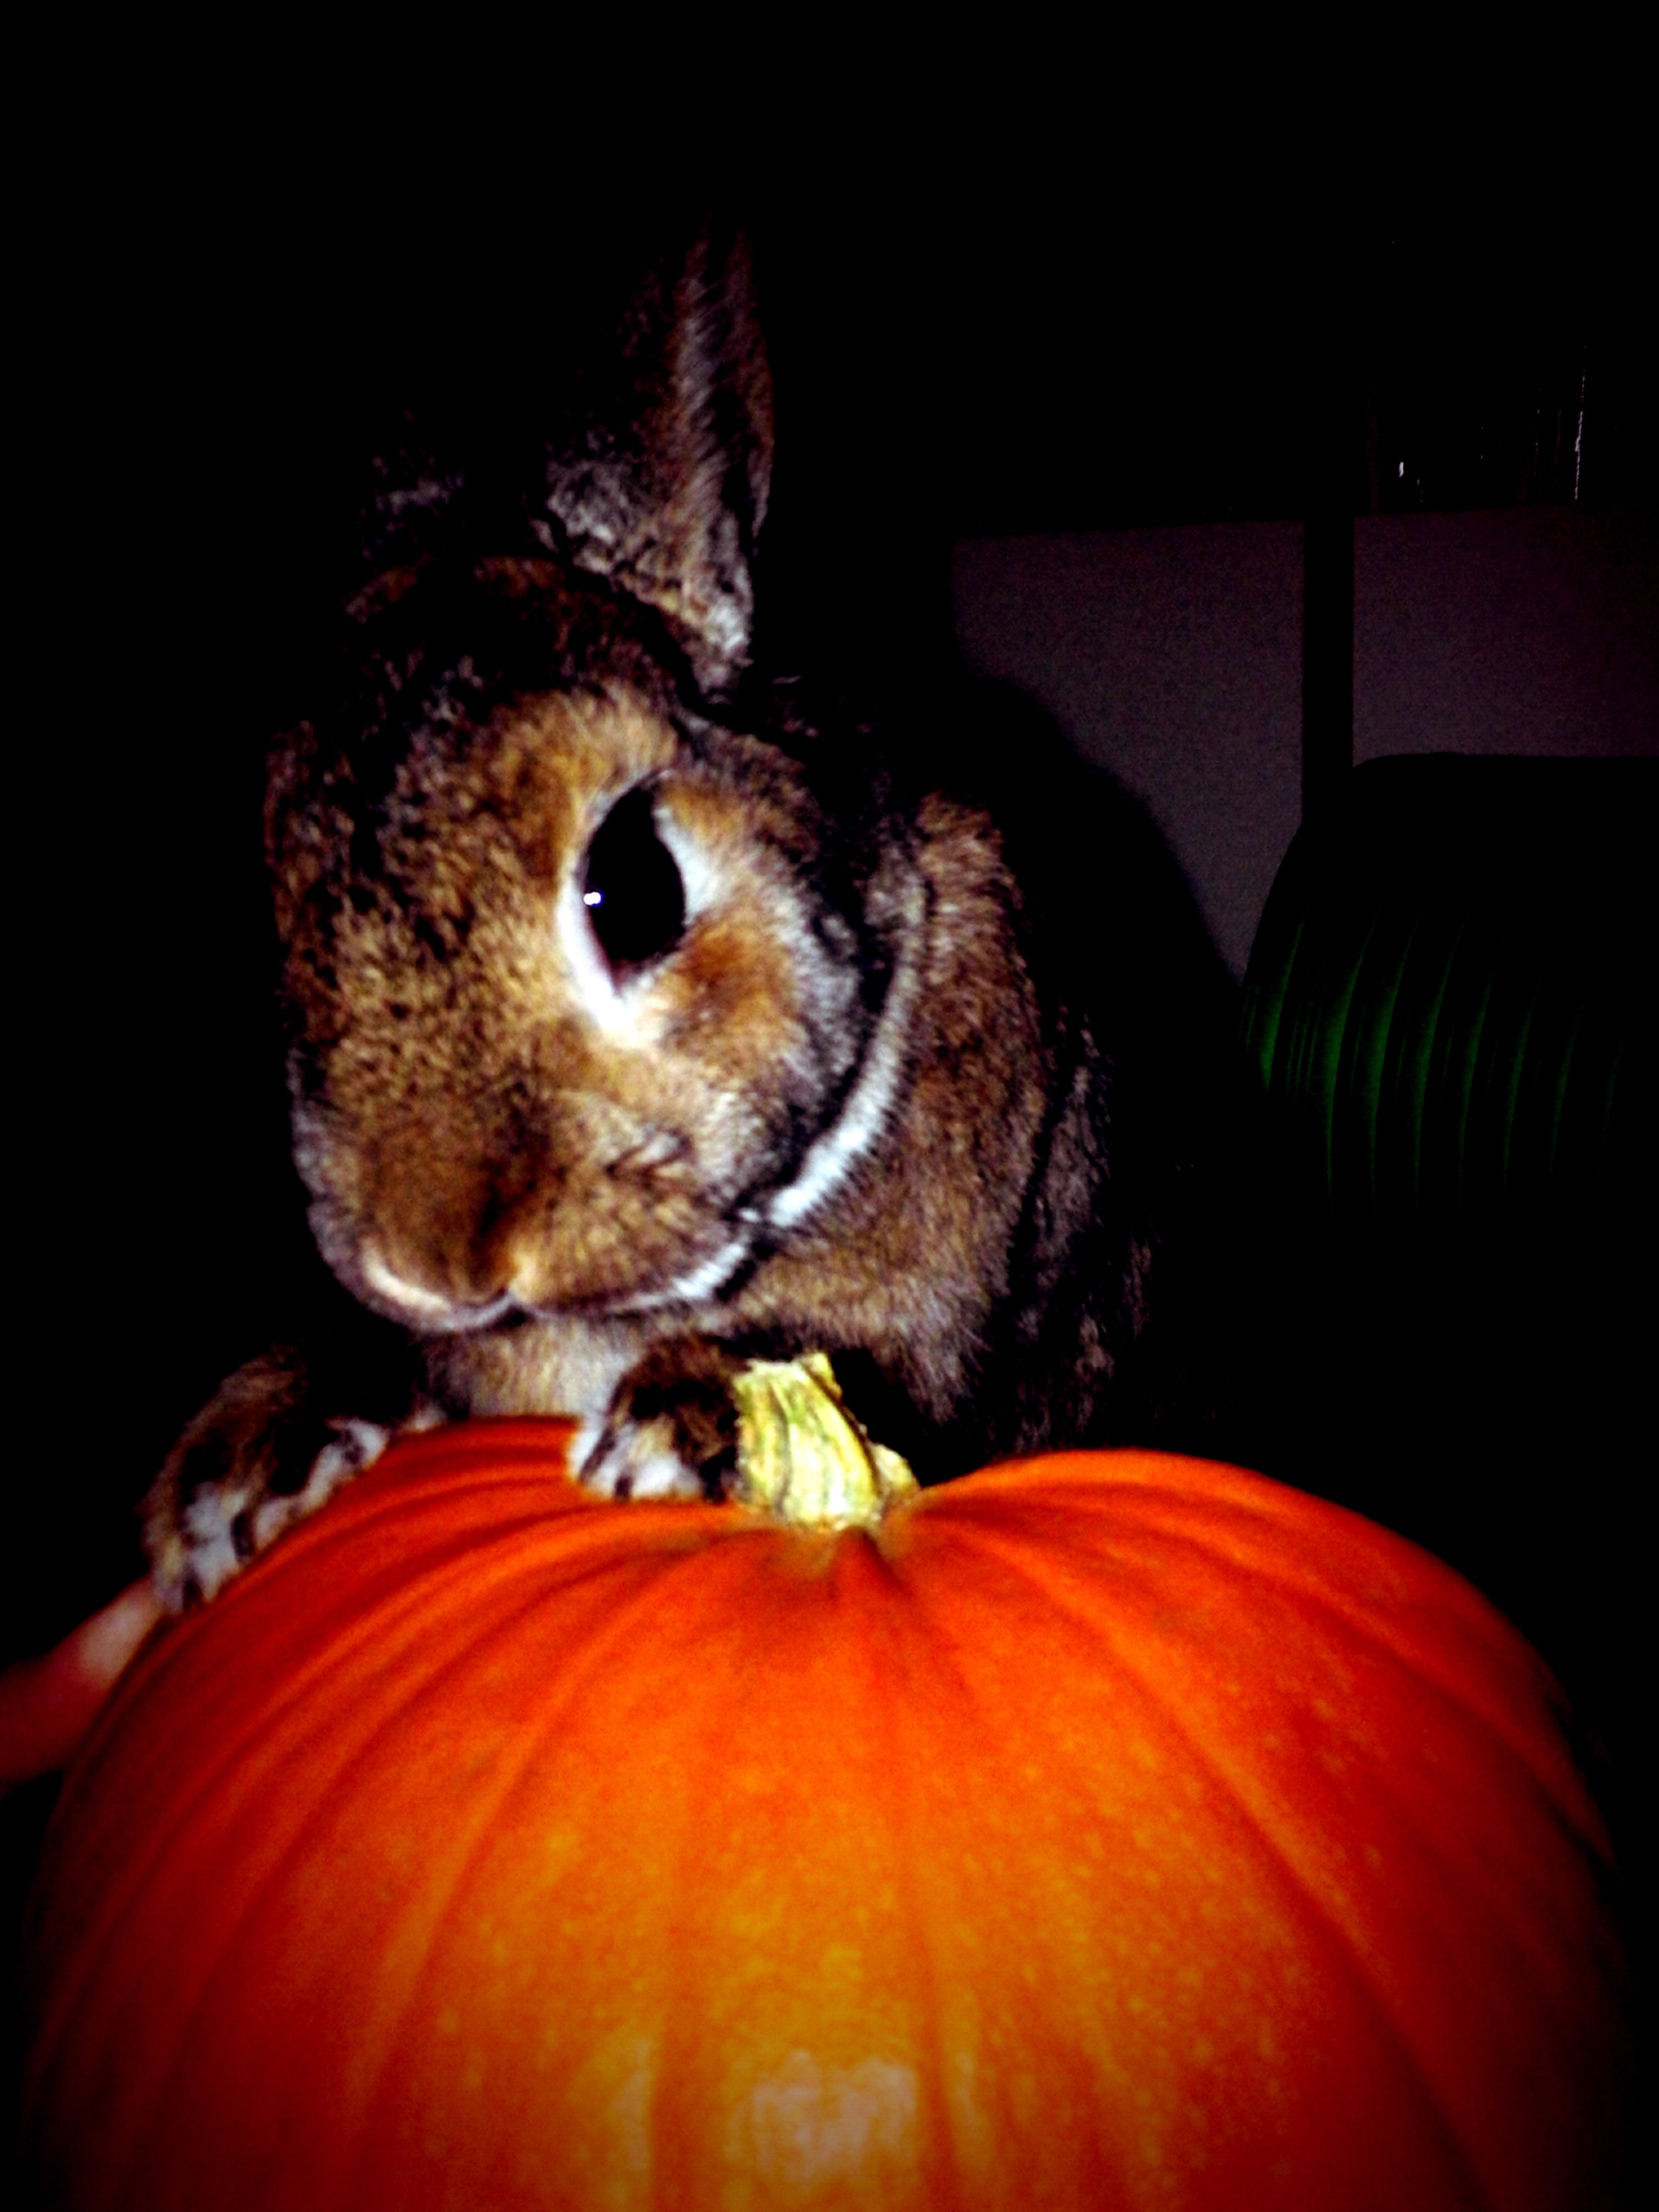 Bunny Looks for the Perfect Point to Start Carving a Jack-O'-Lantern